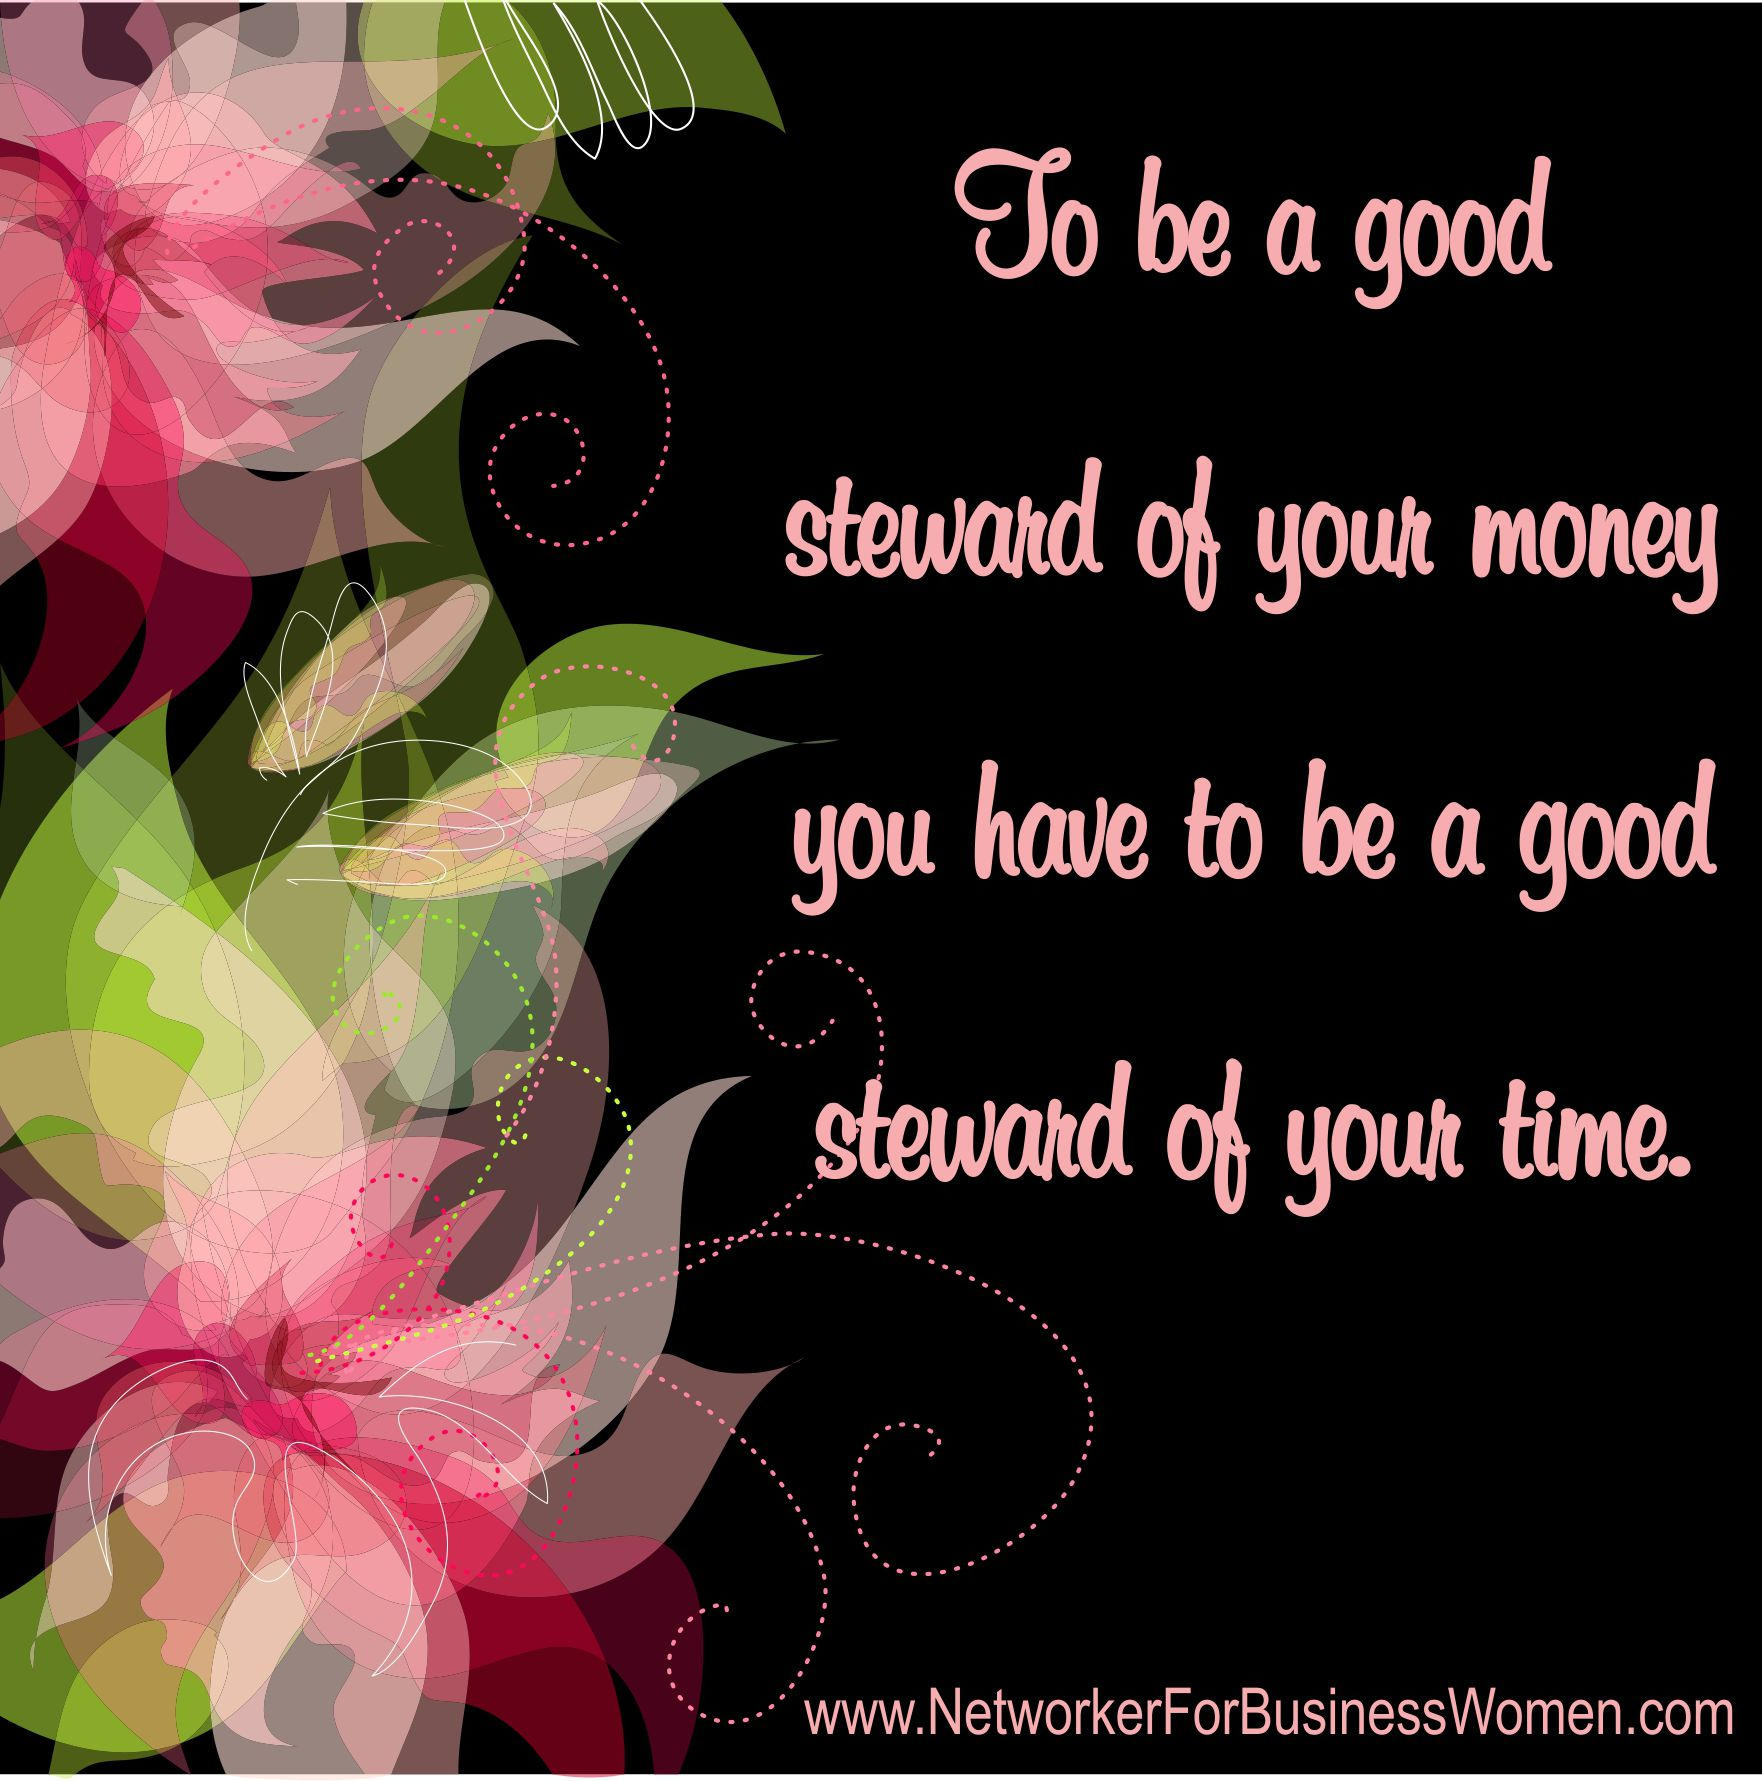 to be a good steward of your money, you have to be a good steward of your time.